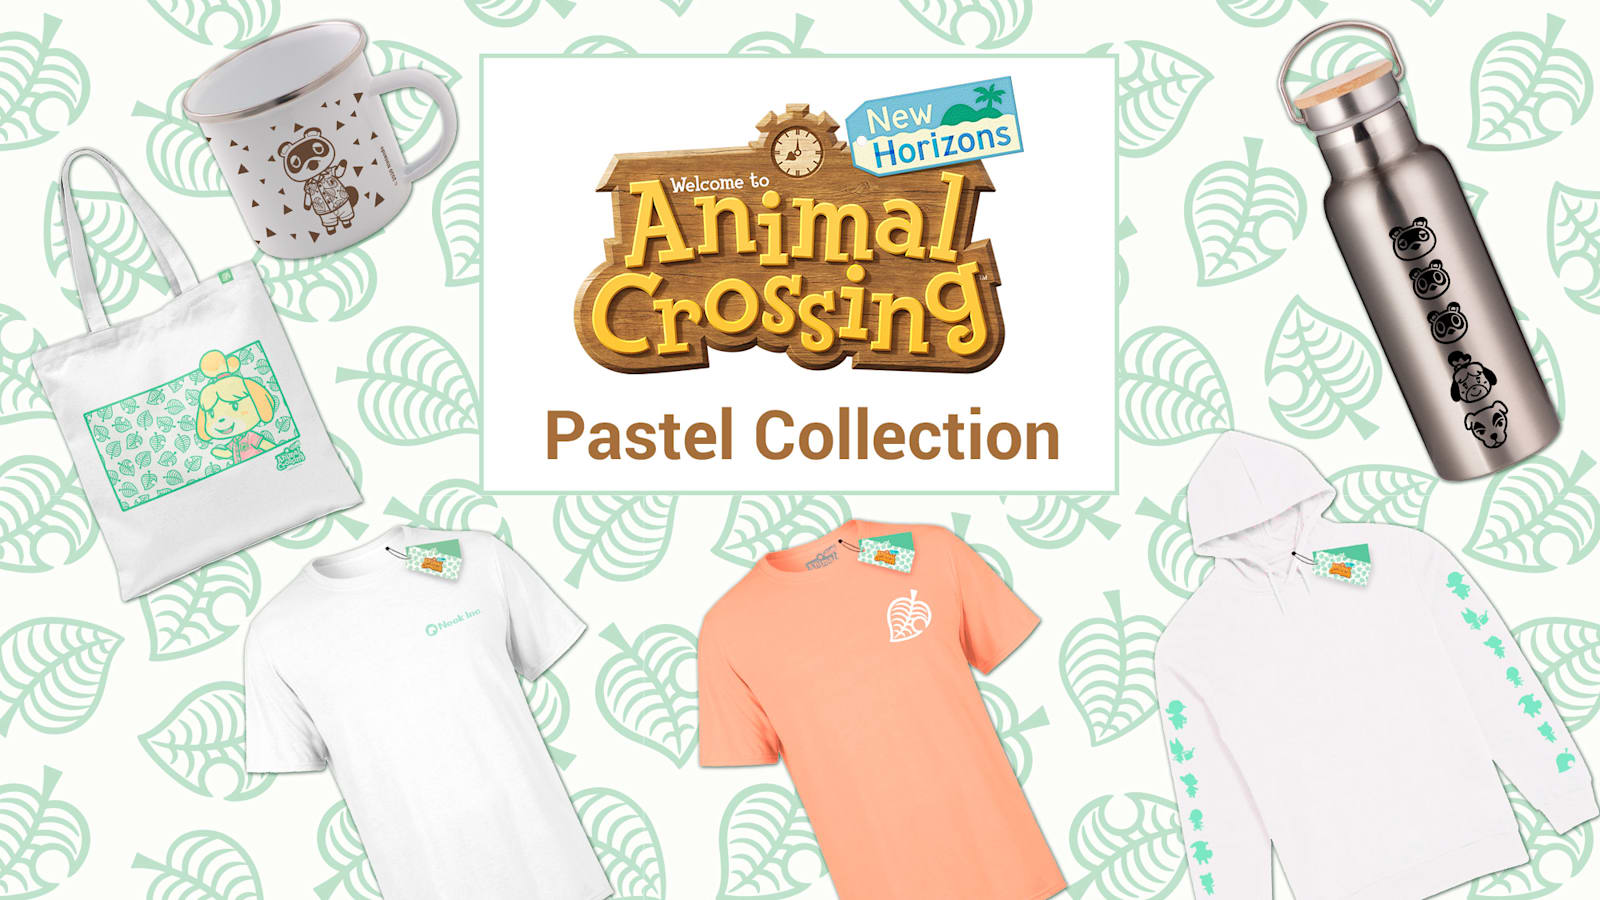 Animal Crossing New Horizons Pastel Collection